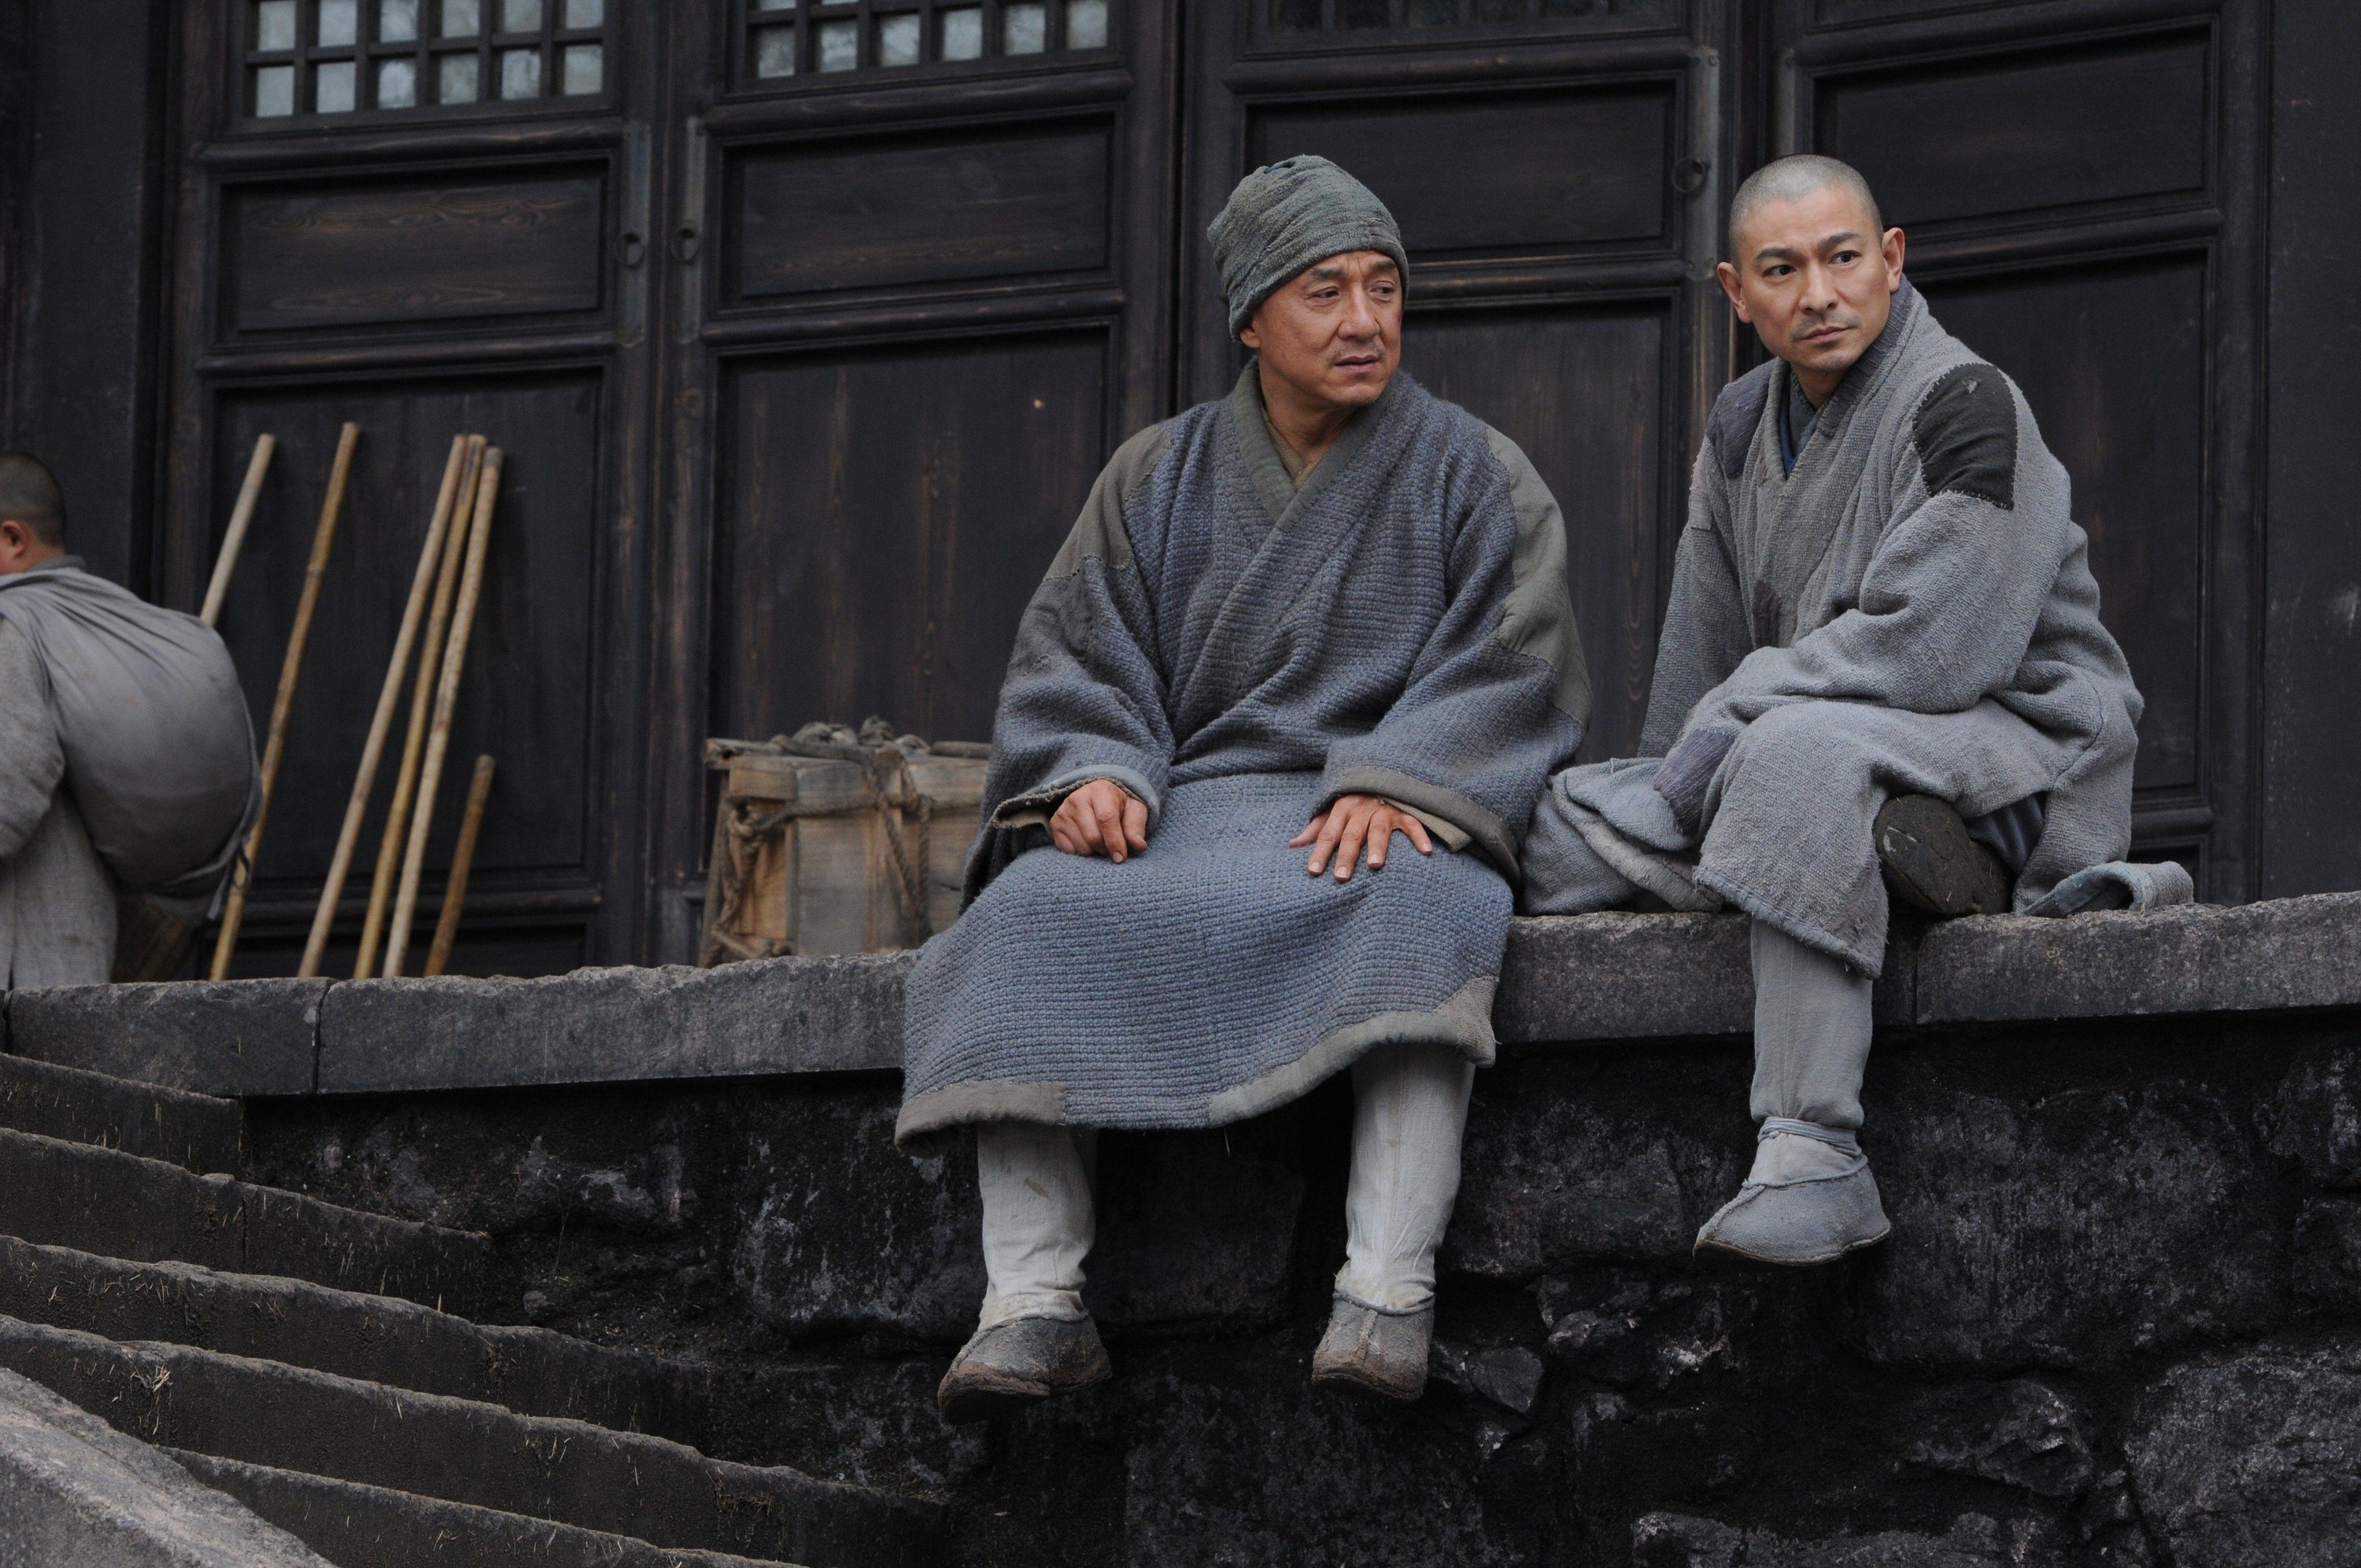 Jackie Chan and Andy Lau's characters sitting together